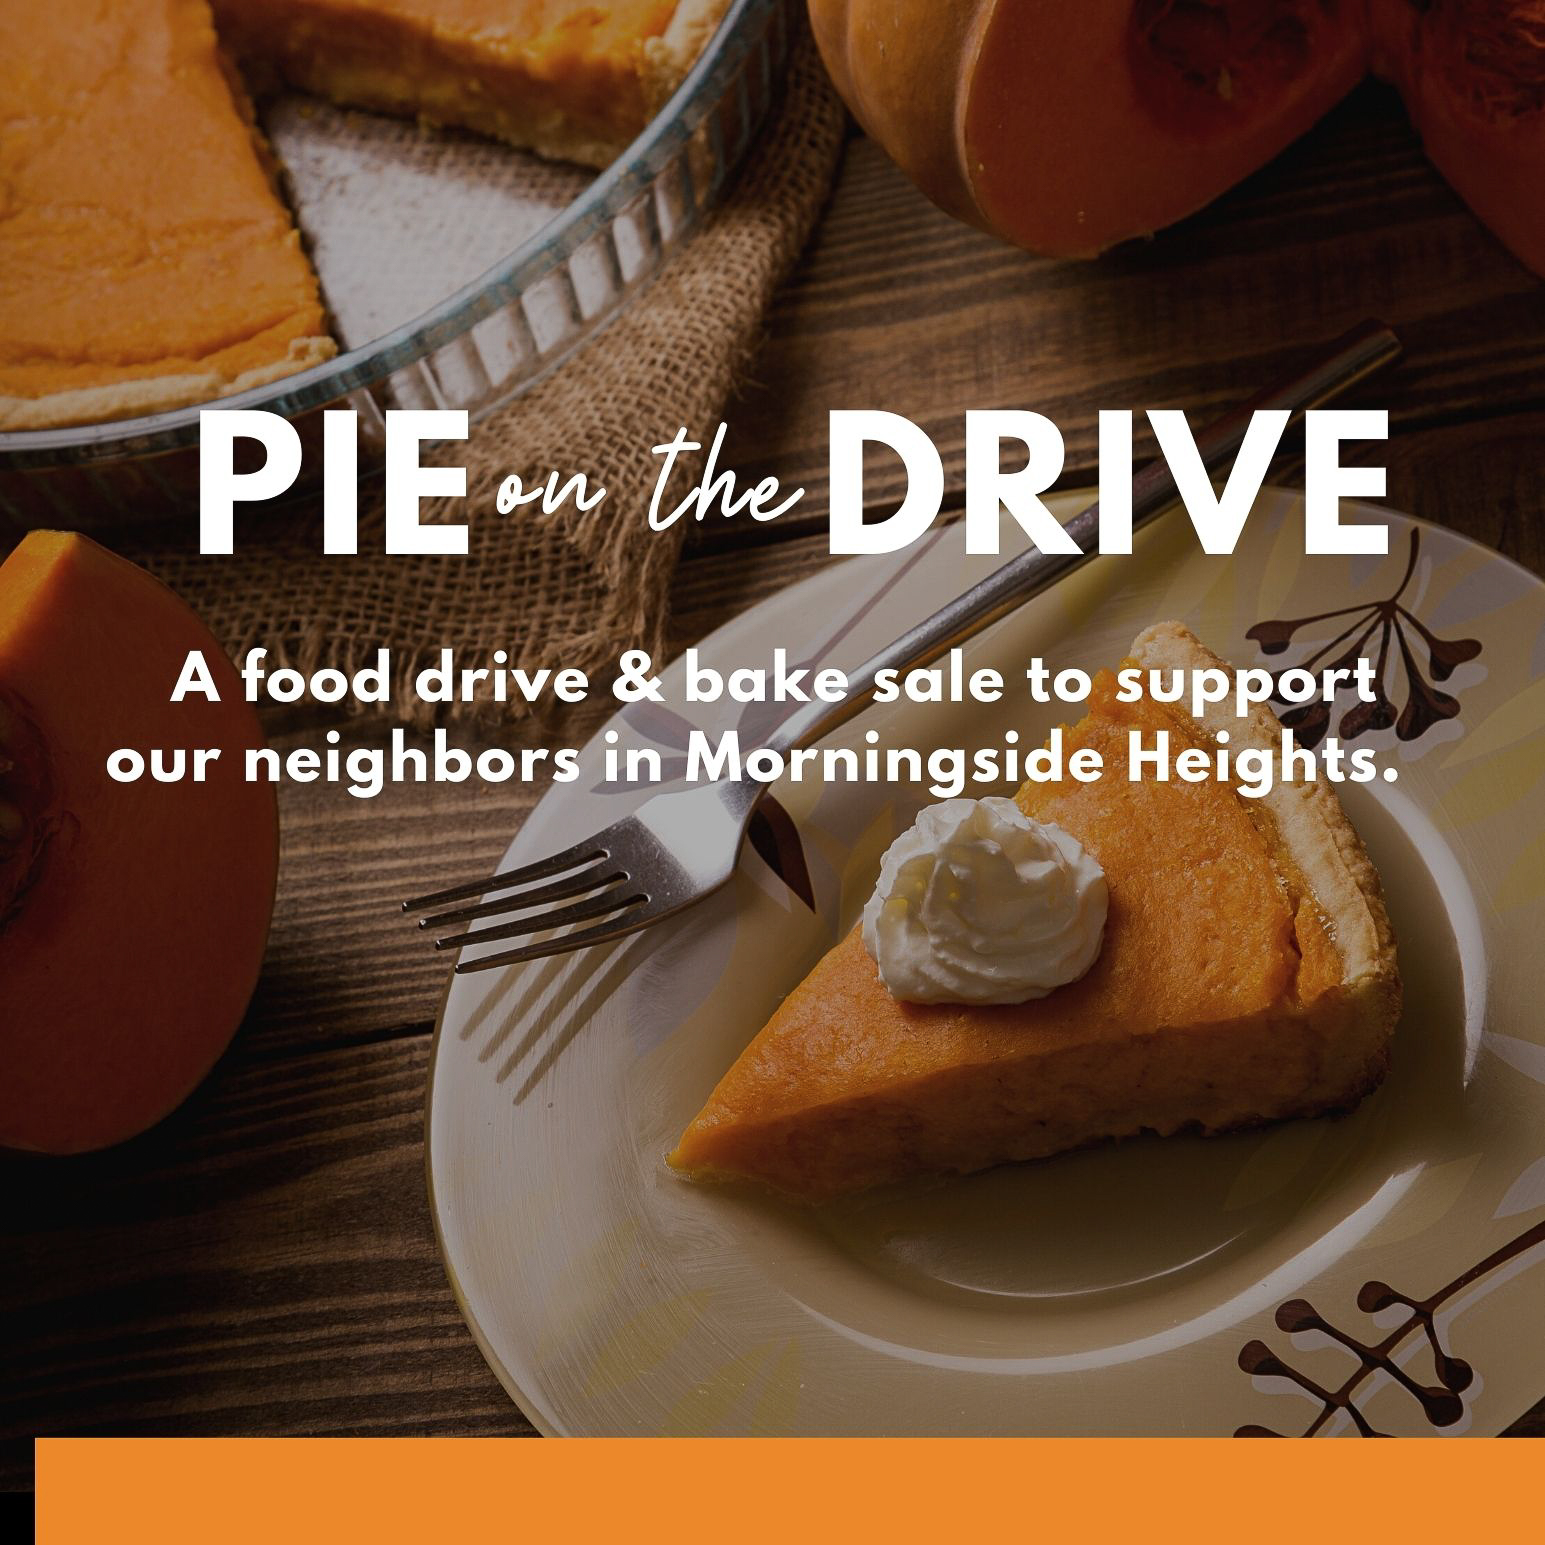 Pie on the Drive